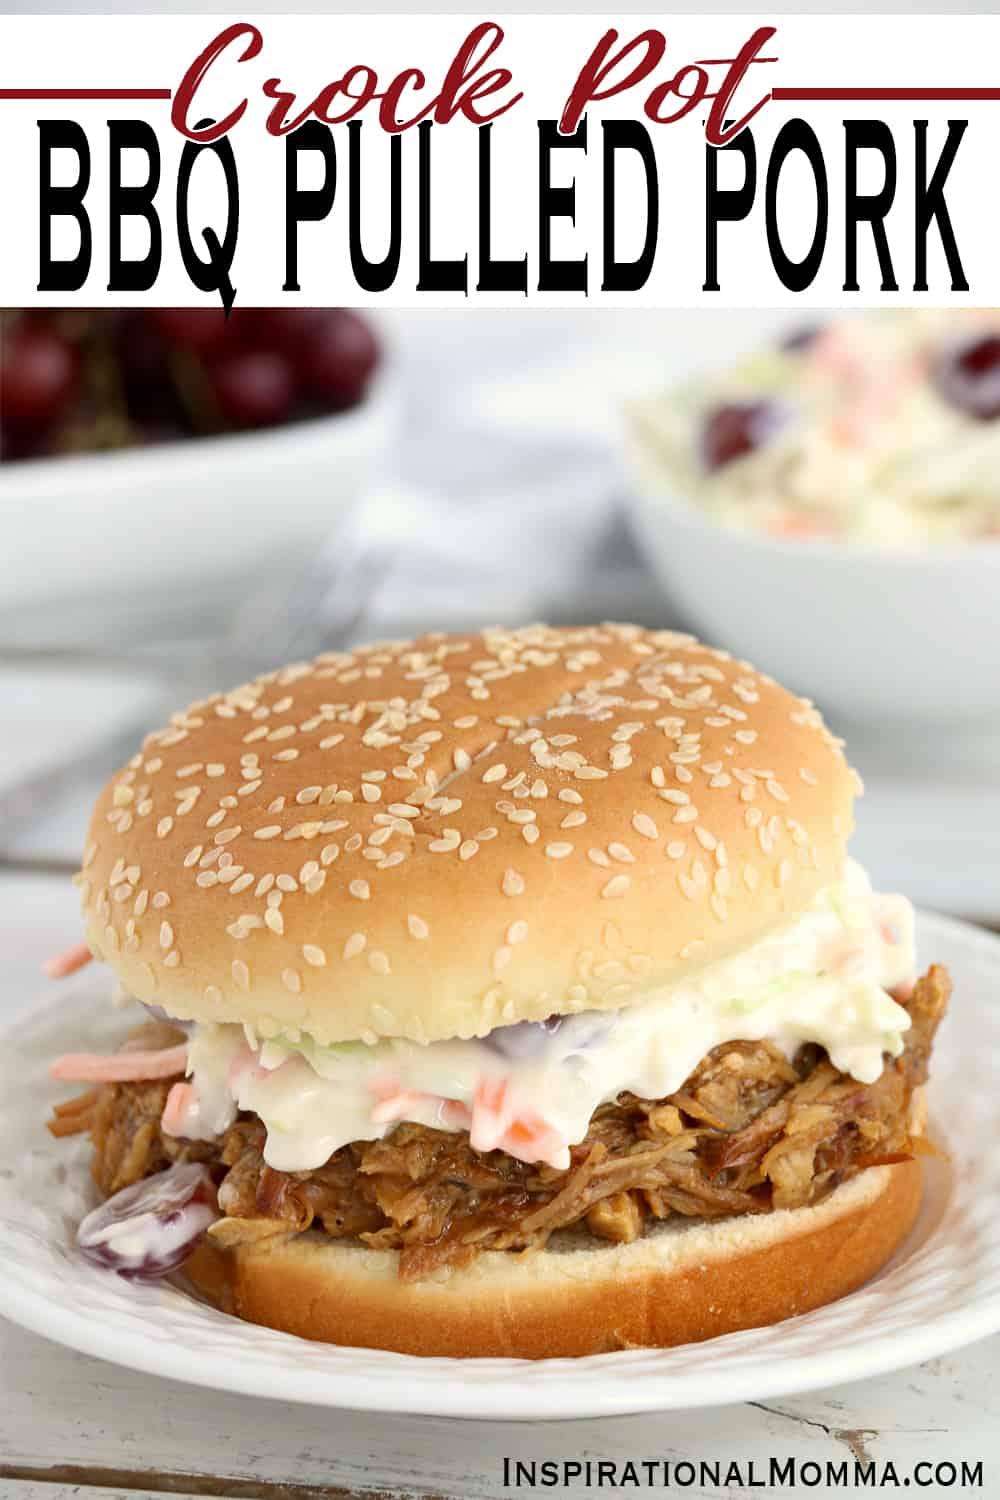 Crock Pot BBQ Pulled Pork is a delicious way to feed a crowd. It takes just minutes to prepare and is tender, flavorful, and irresistible! #InspirationalMomma #crockpotbbqpulledpork #bbqpulledpork #crockpot #slowcookerbbqpulledpork #slowcooker #partyfood #pulledporksandwiches